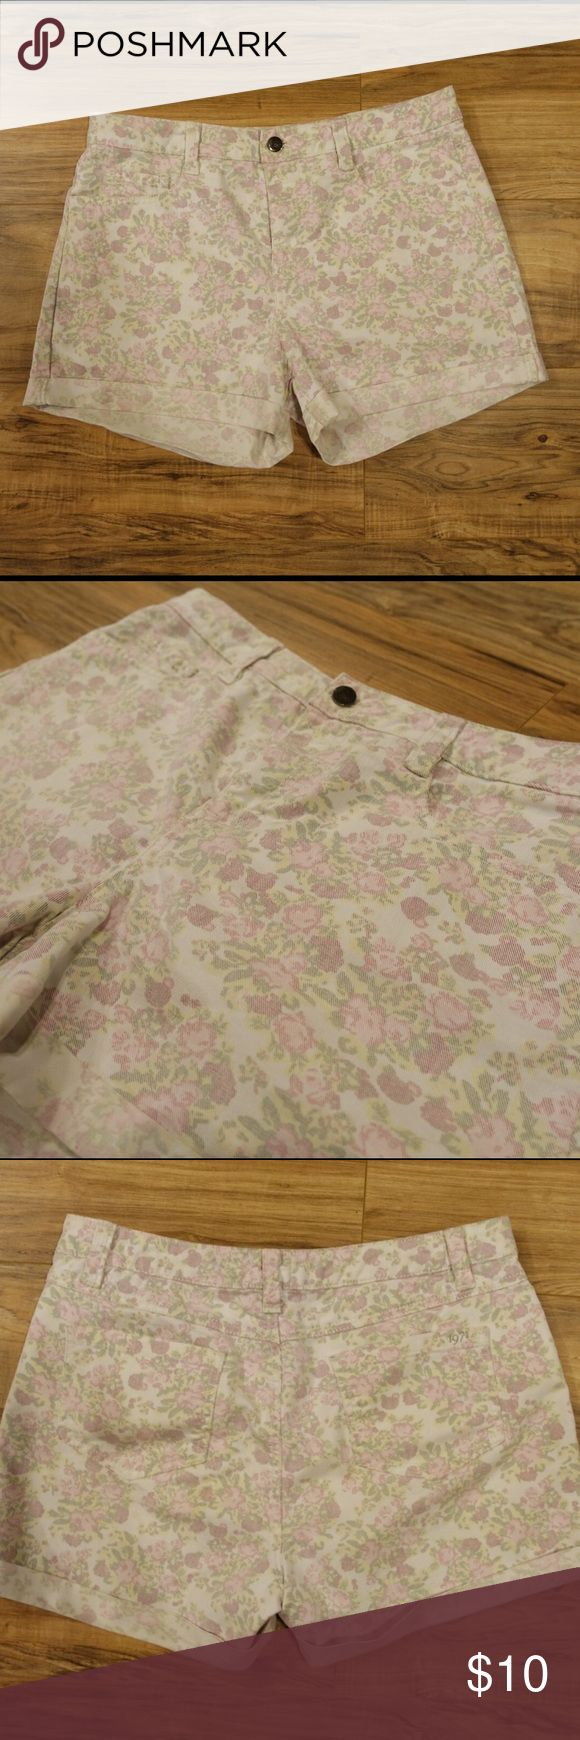 Floral denim shorts EUC! Adorable floral high waisted shorts.   Waist 16.5 Rise 10.5 Inseam 3 Reiss Shorts